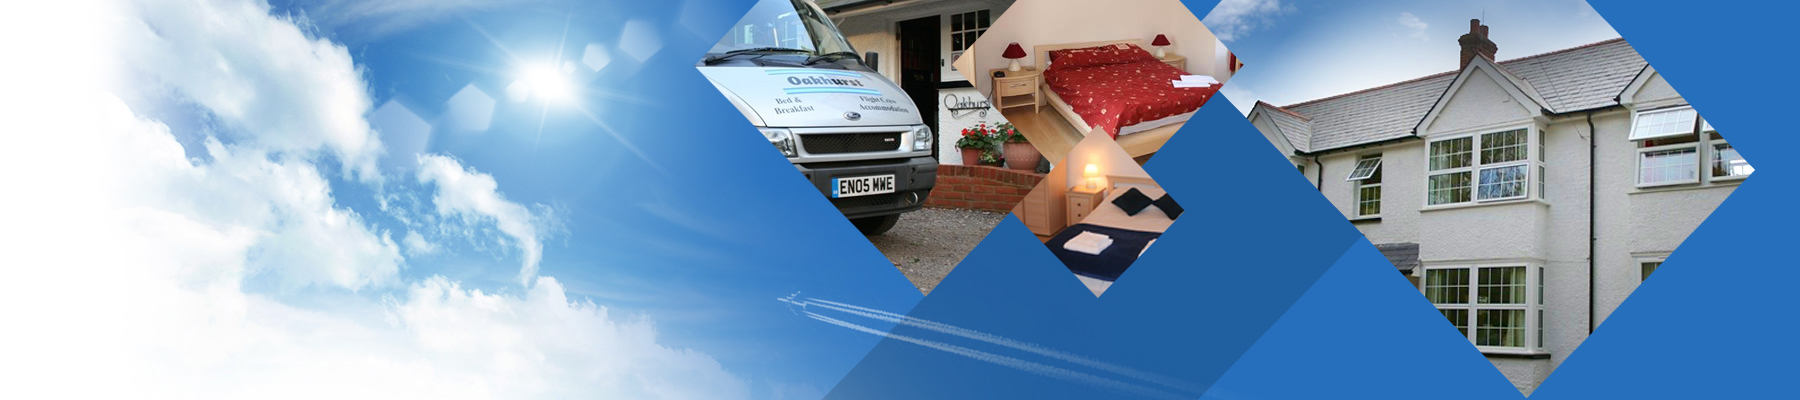 The Oakhurst Bed and Breakfast Gatwick